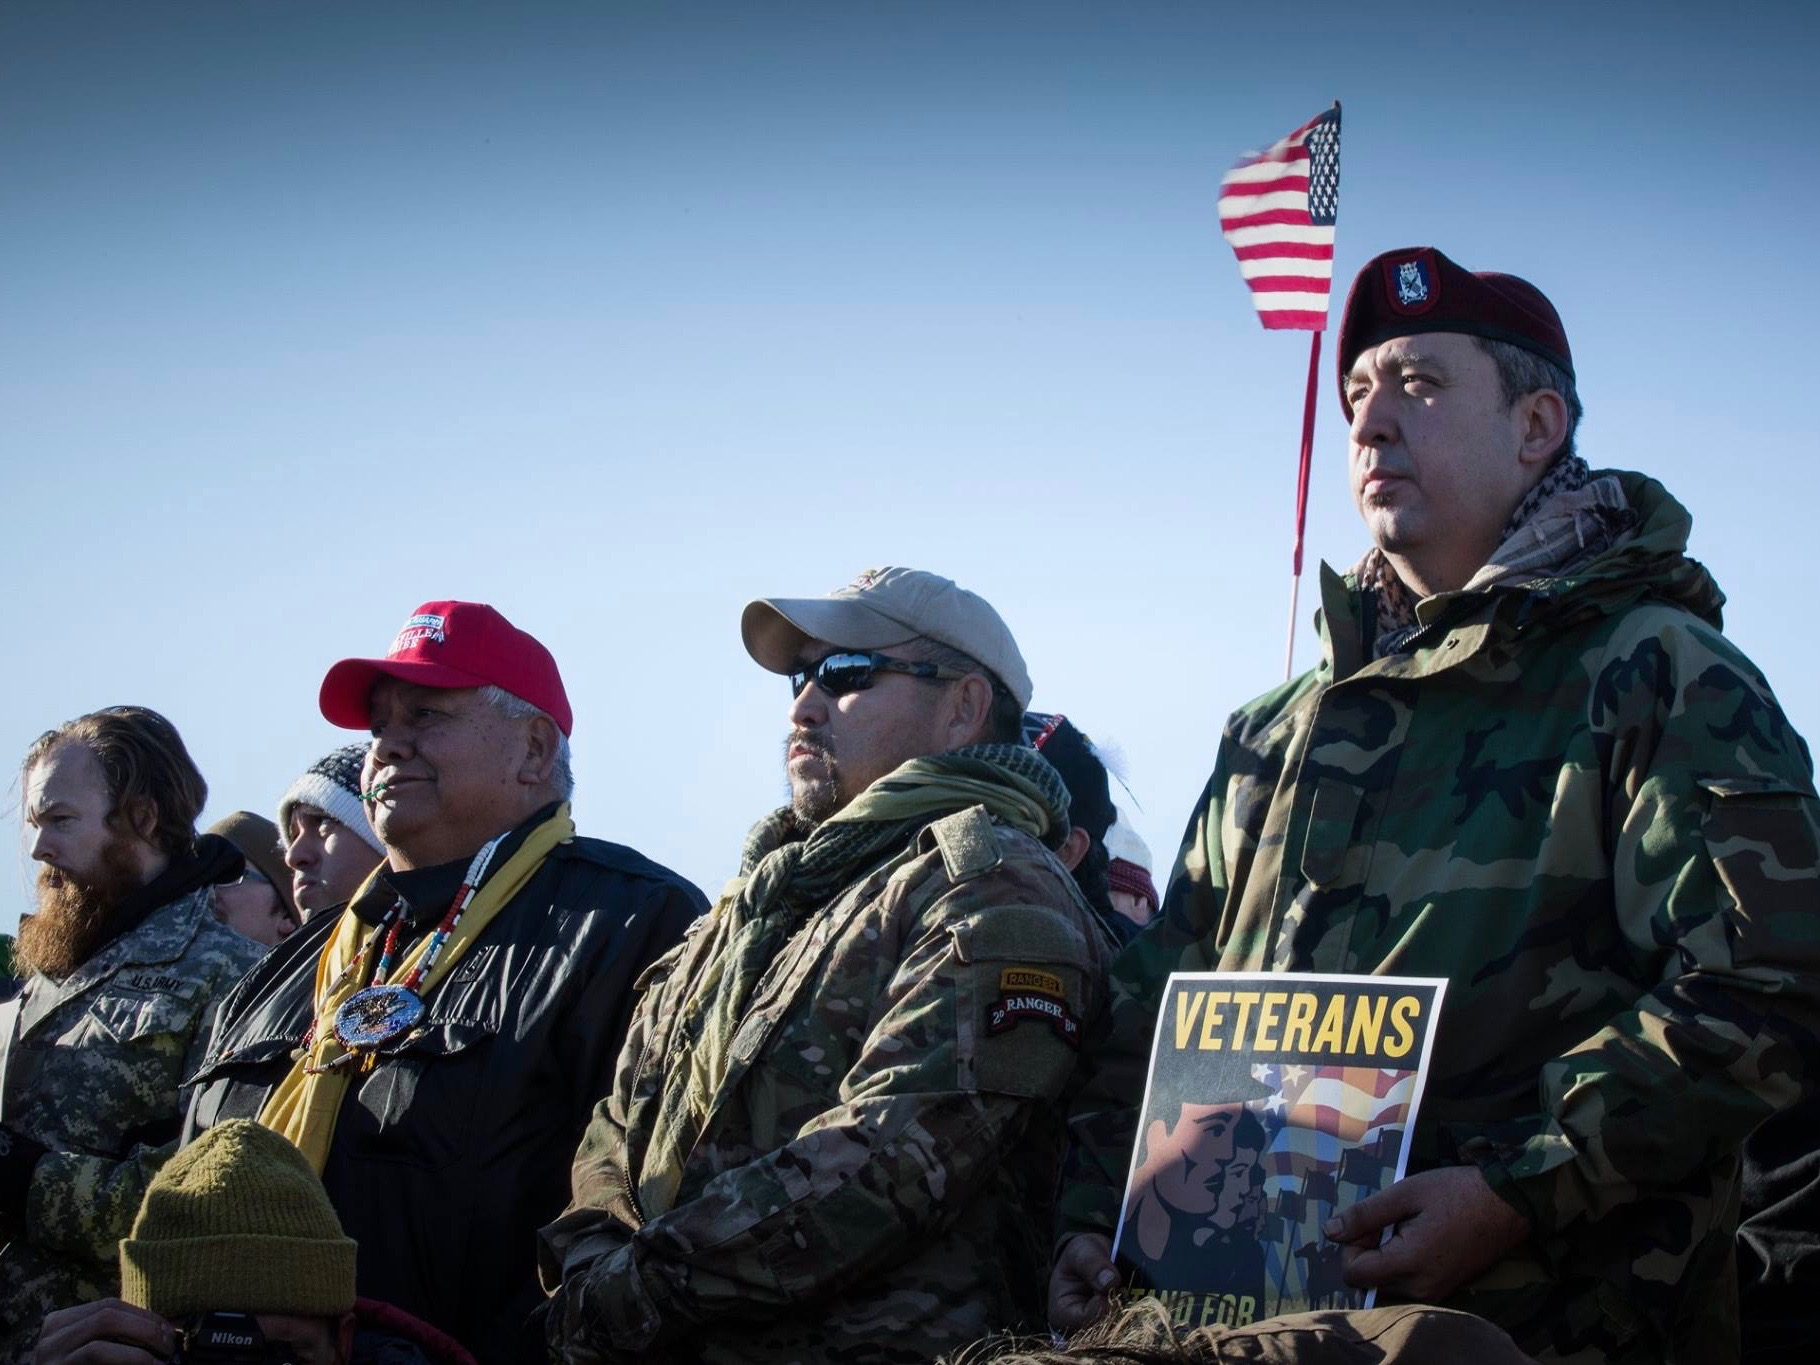 Democracy Now: Thousands of veterans deploy to Standing Rock